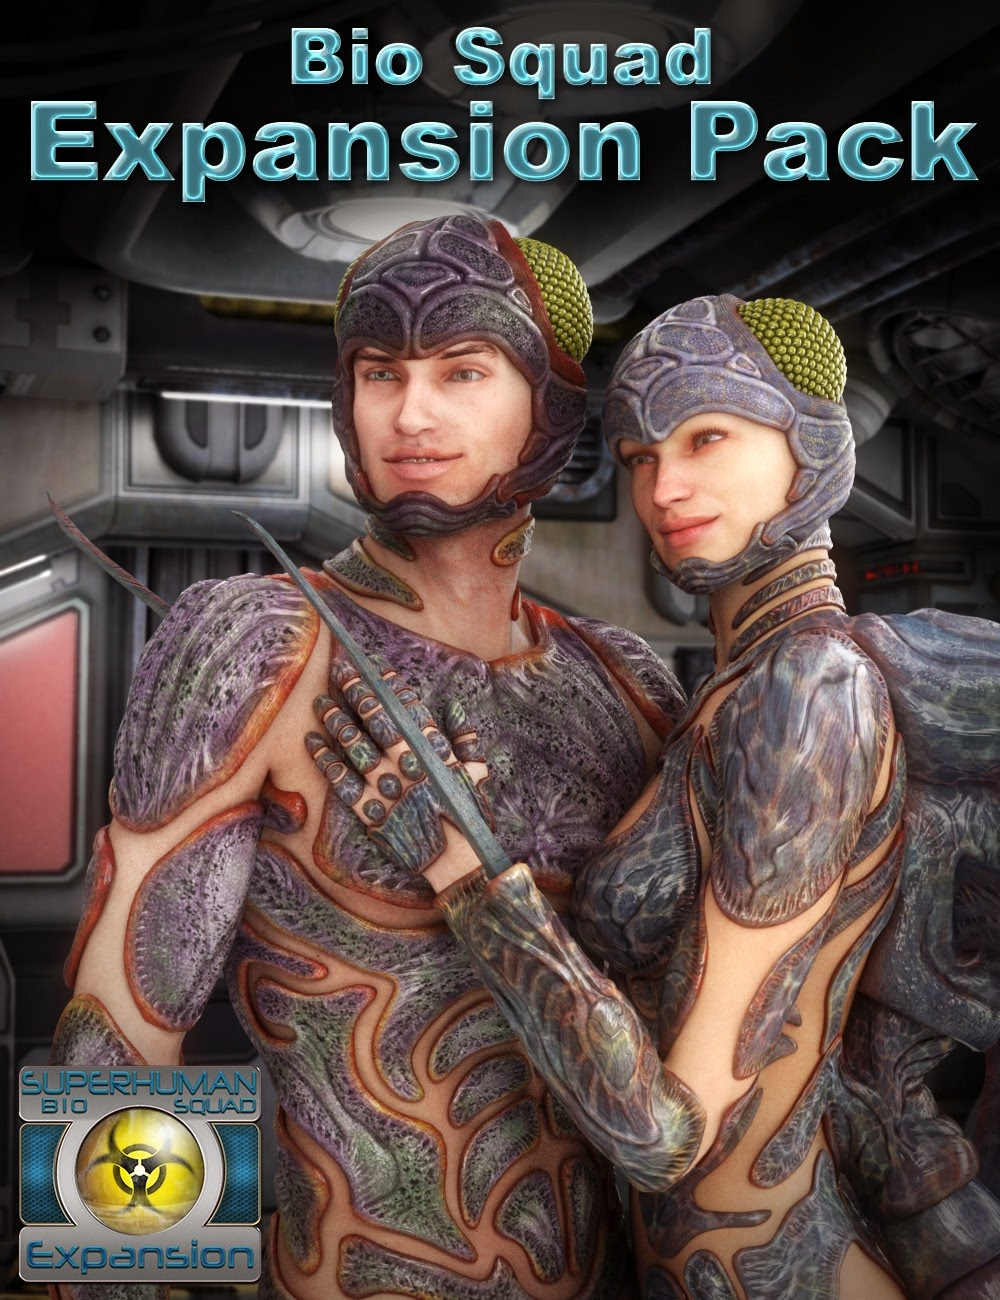 Bio Squad Expansion Pack